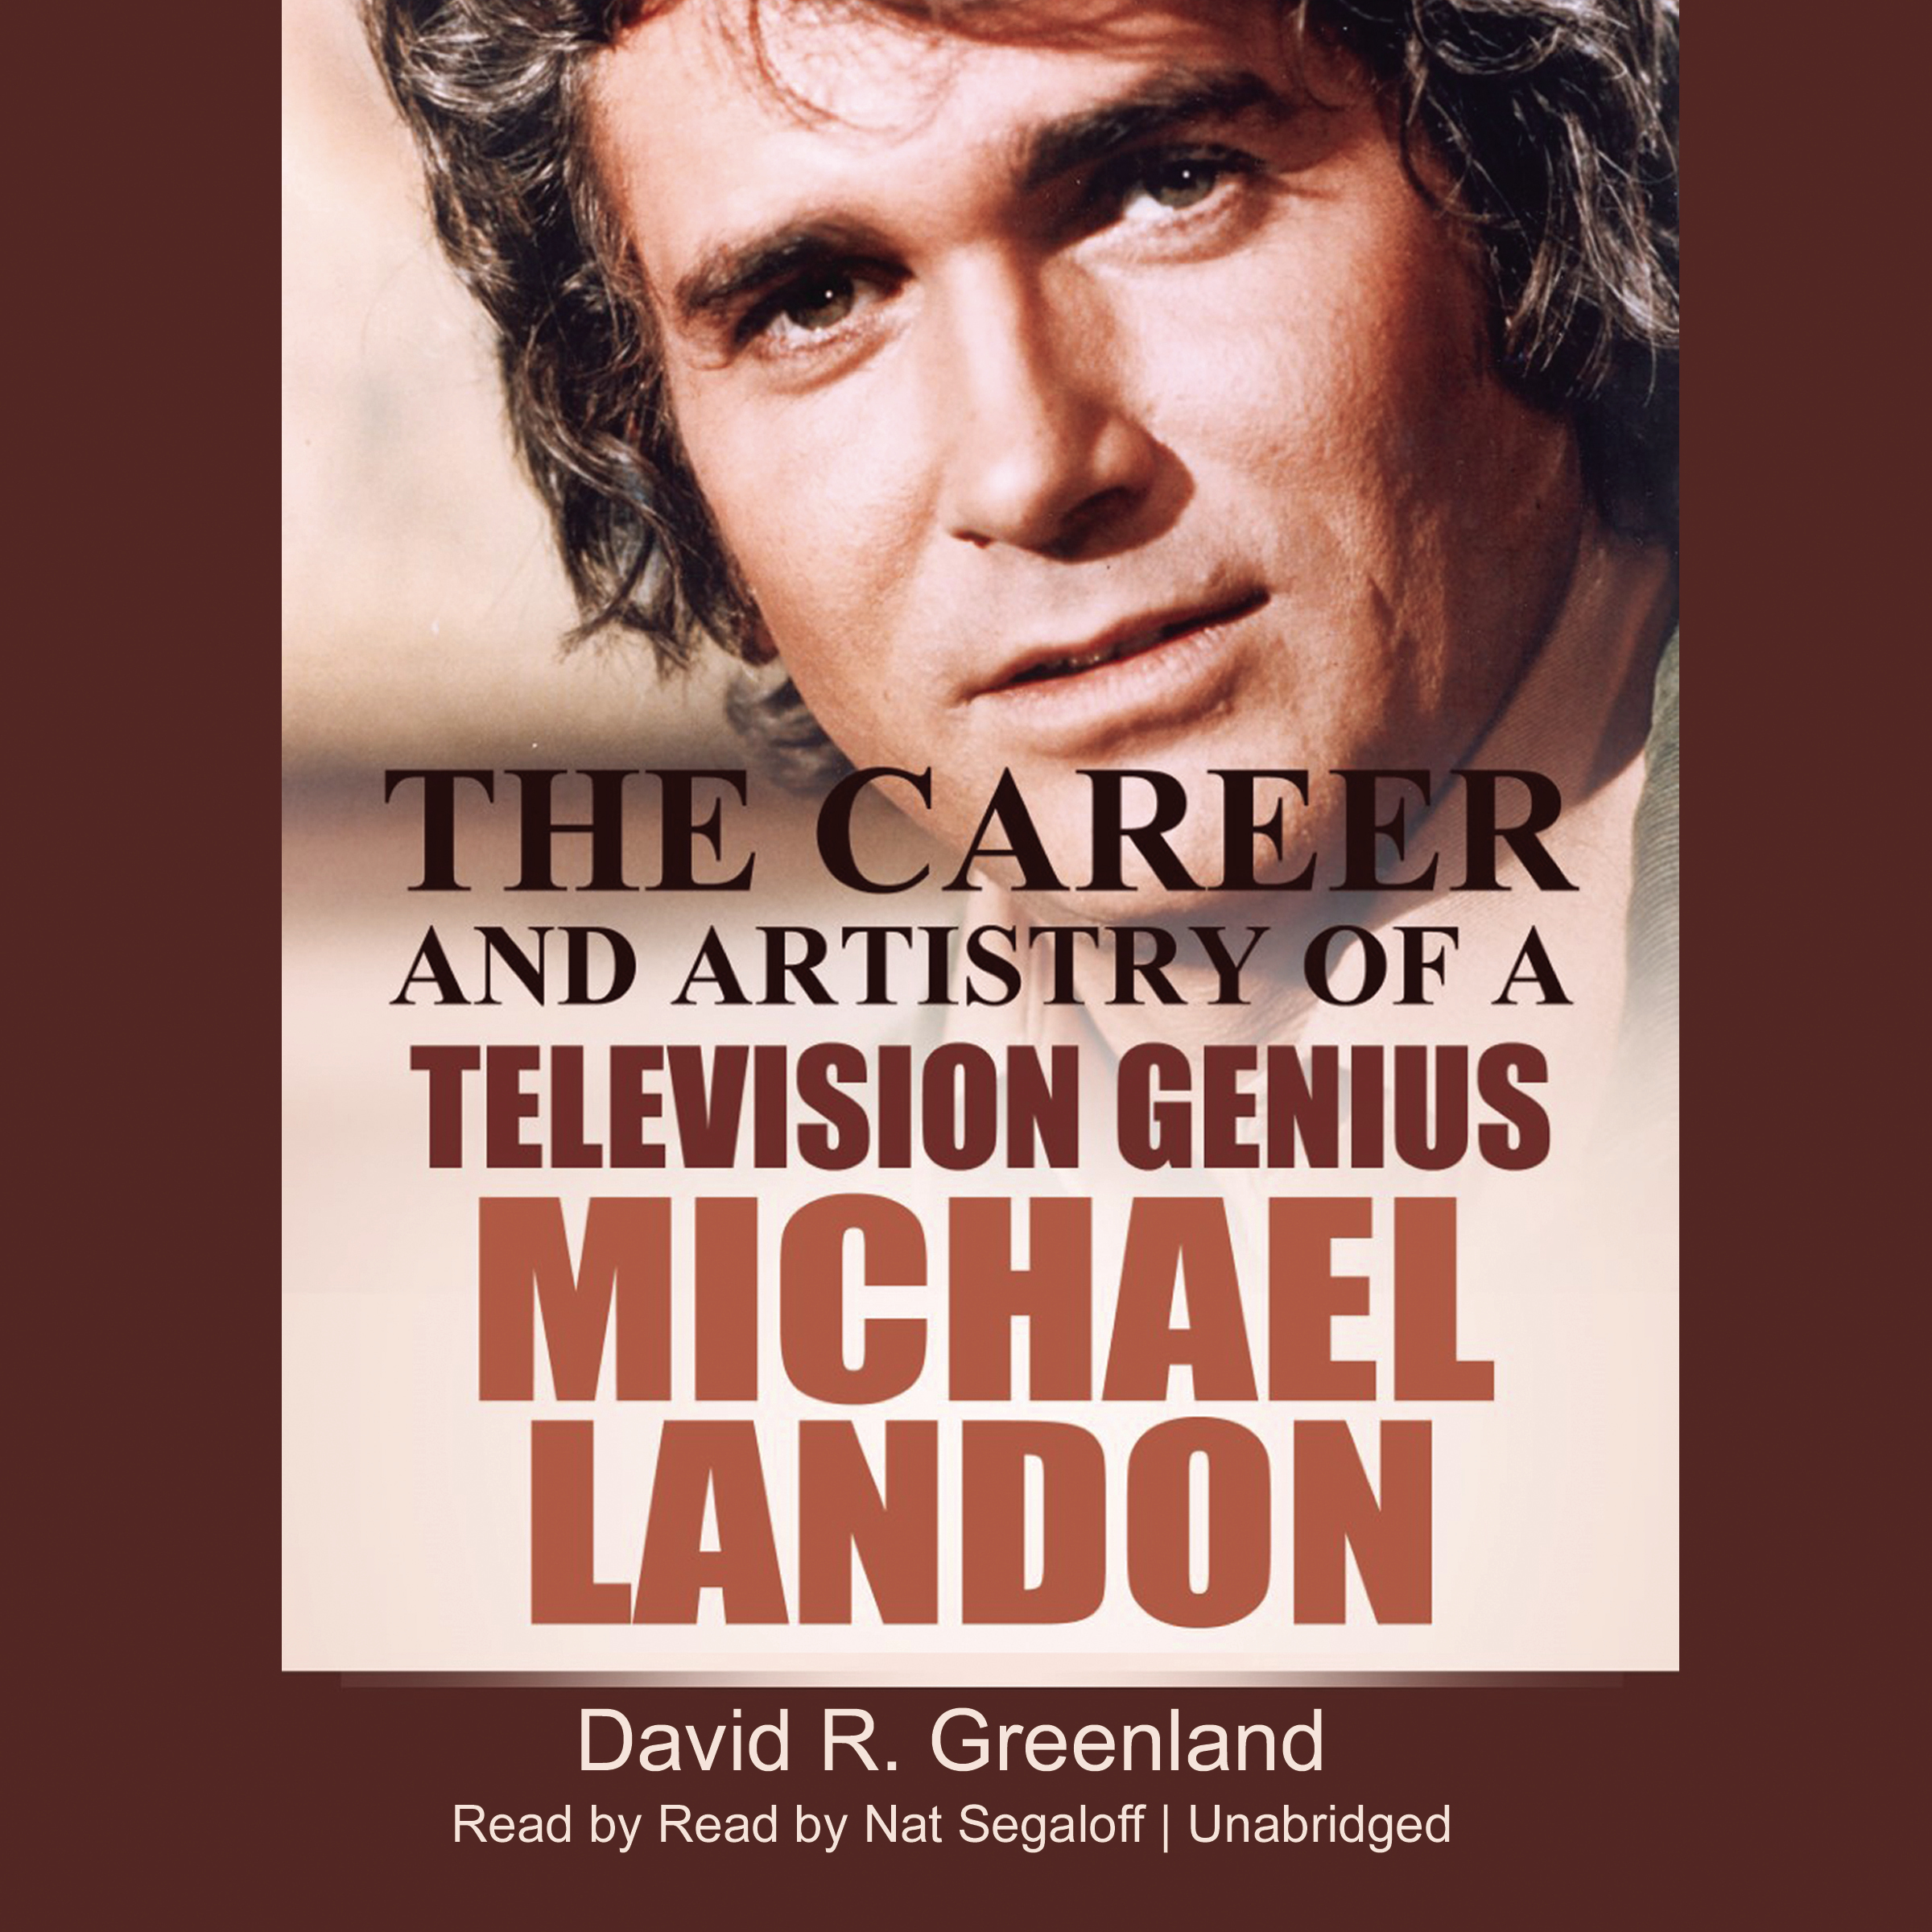 Printable Michael Landon: The Career and Artistry of a Television Genius Audiobook Cover Art